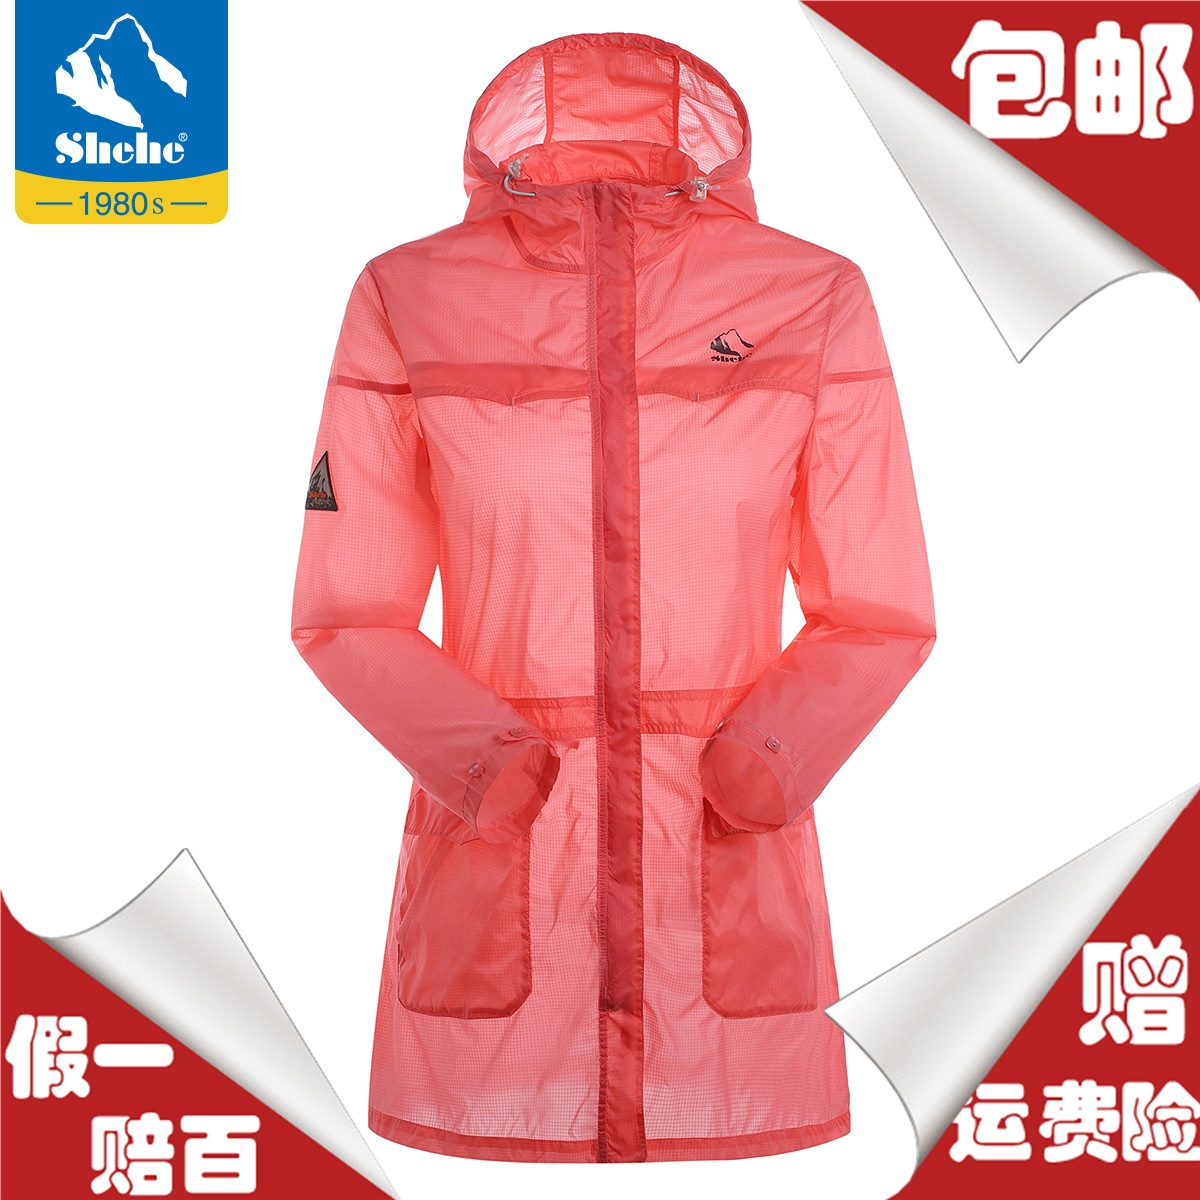 Shehe pole star female spring and summer thin breathable skin uv ultralight windproof outdoor sports coat